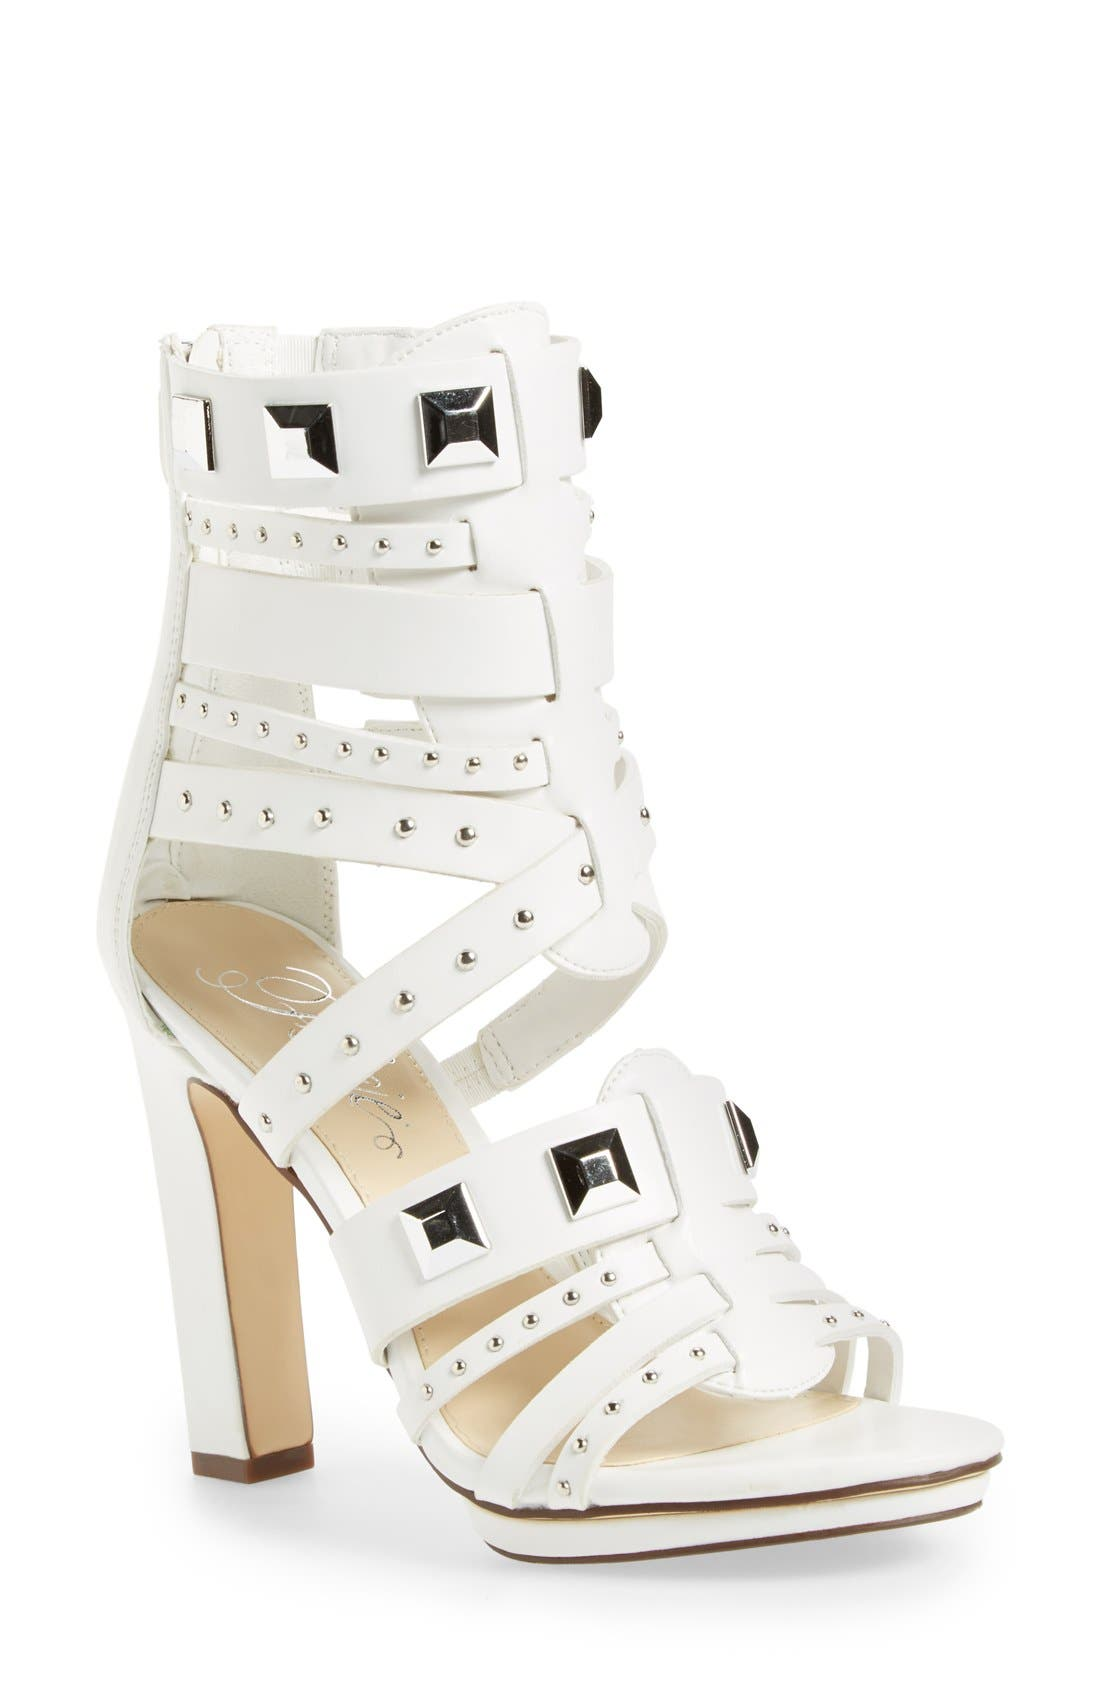 Alternate Image 1 Selected - Fergie 'Bonnie' Studded Strappy Sandal (Women)